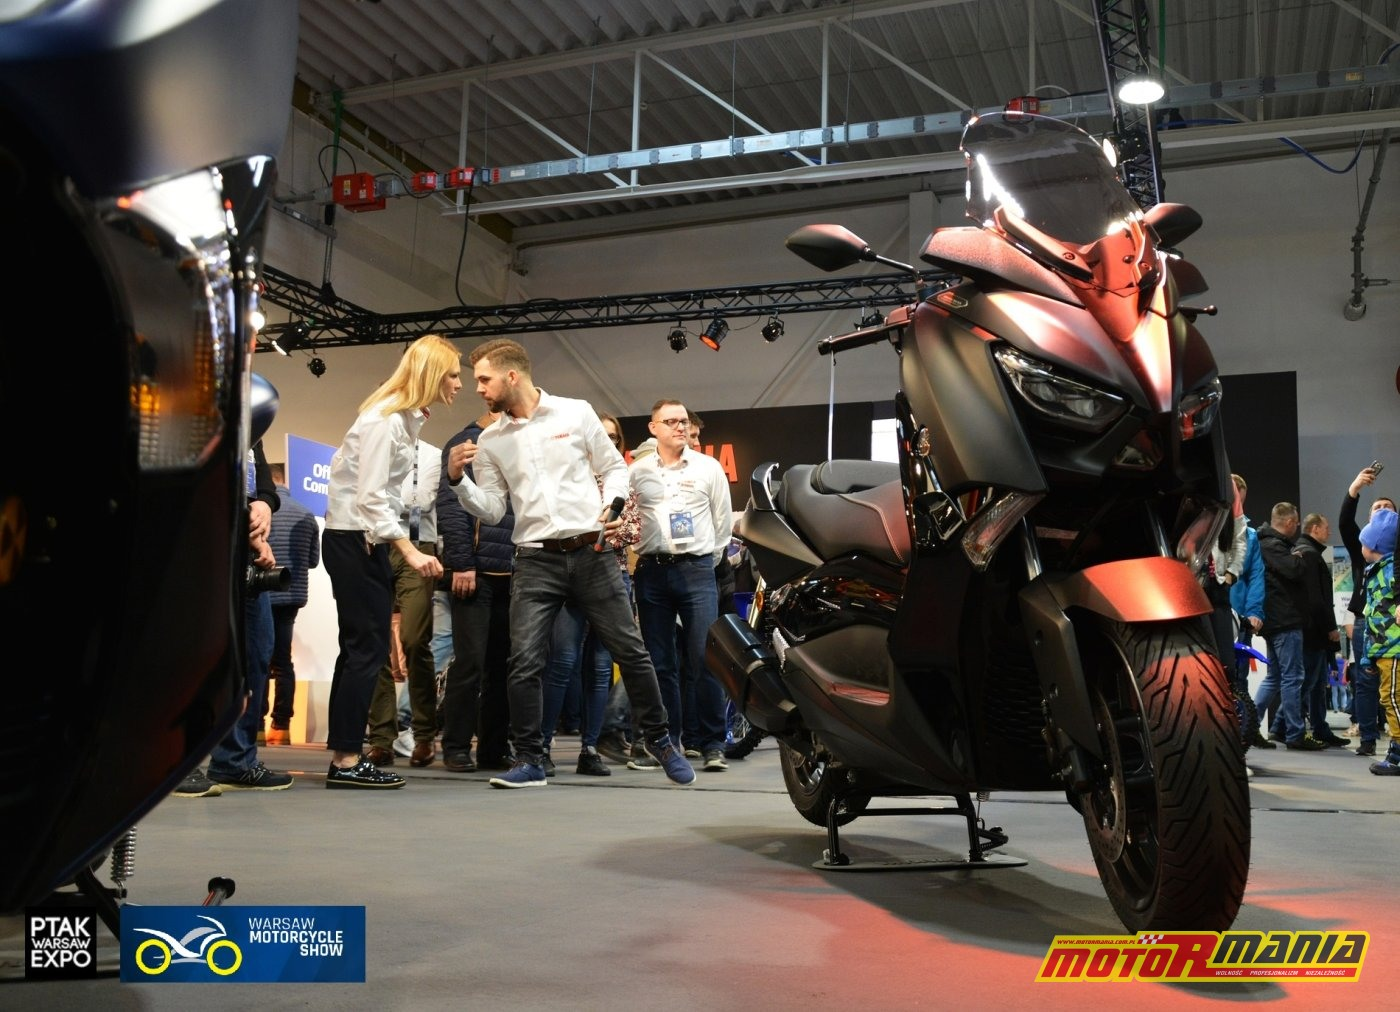 Warsaw Motorcycle Show 2019 (3)